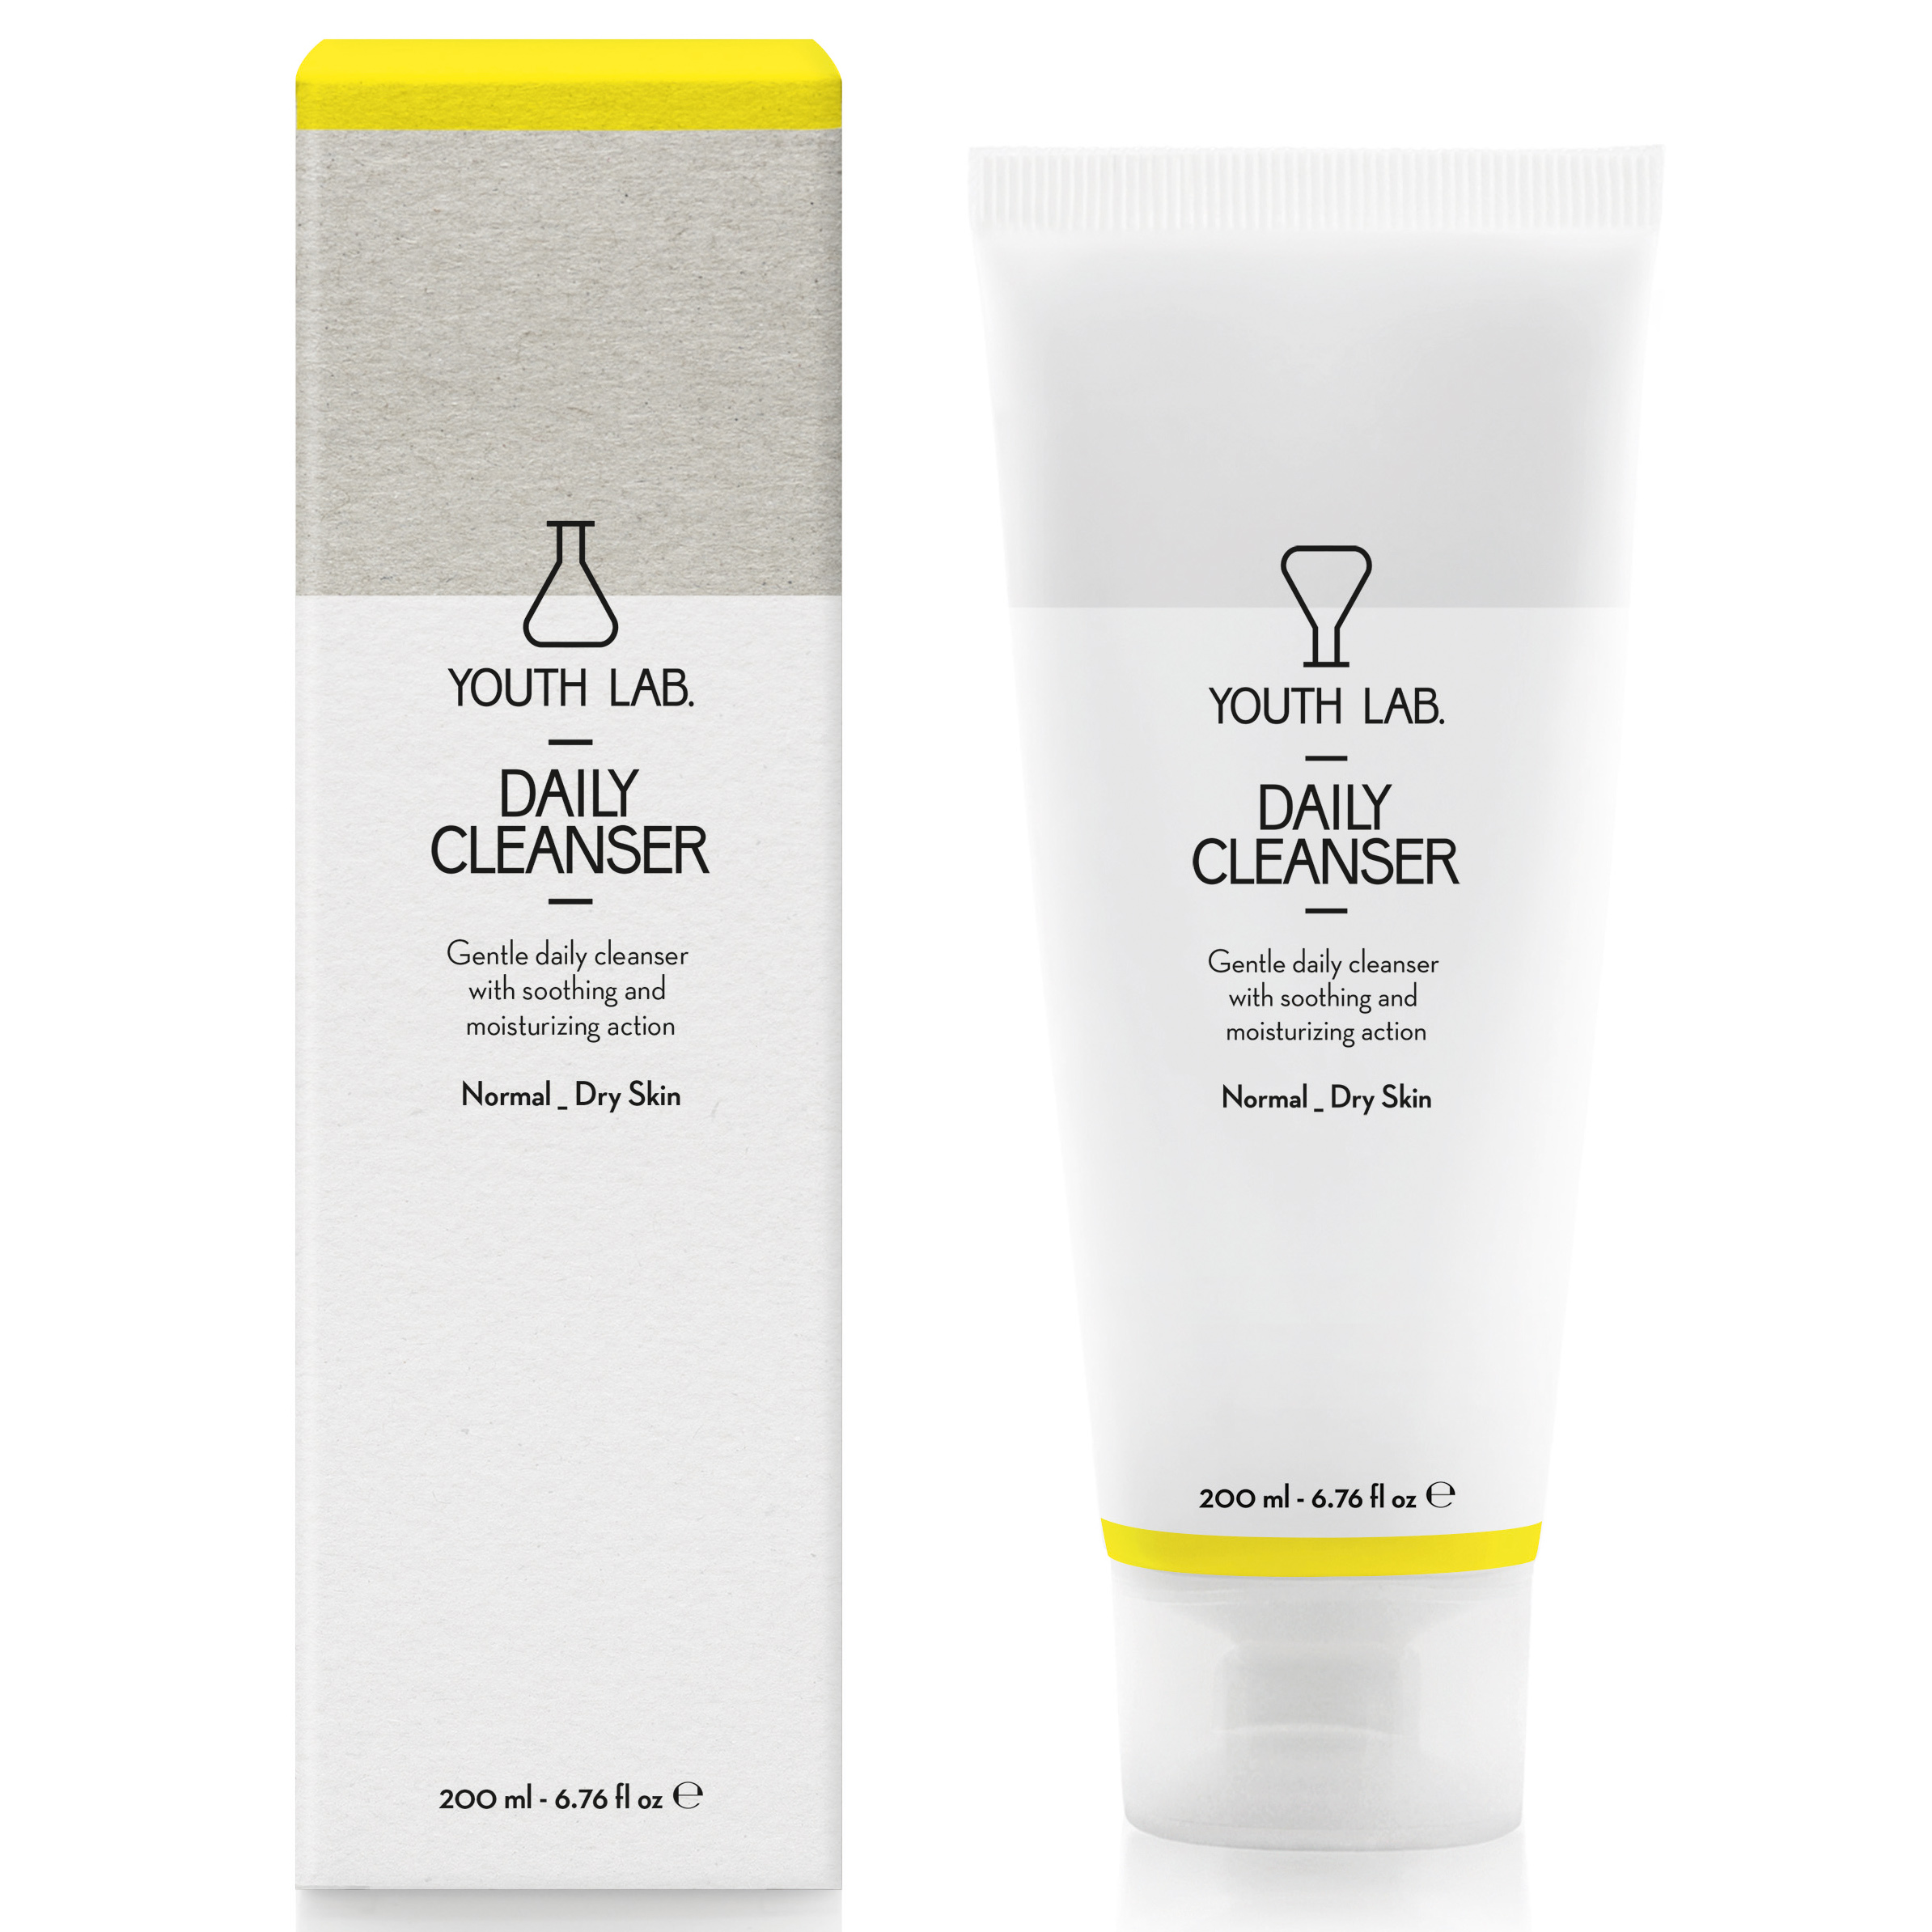 YOUTH LAB. Daily Cleanser Normal Dry Skin Τζελ Καθαρισμού για Κανονικές – Ξηρές Επιδερμίδες200ml